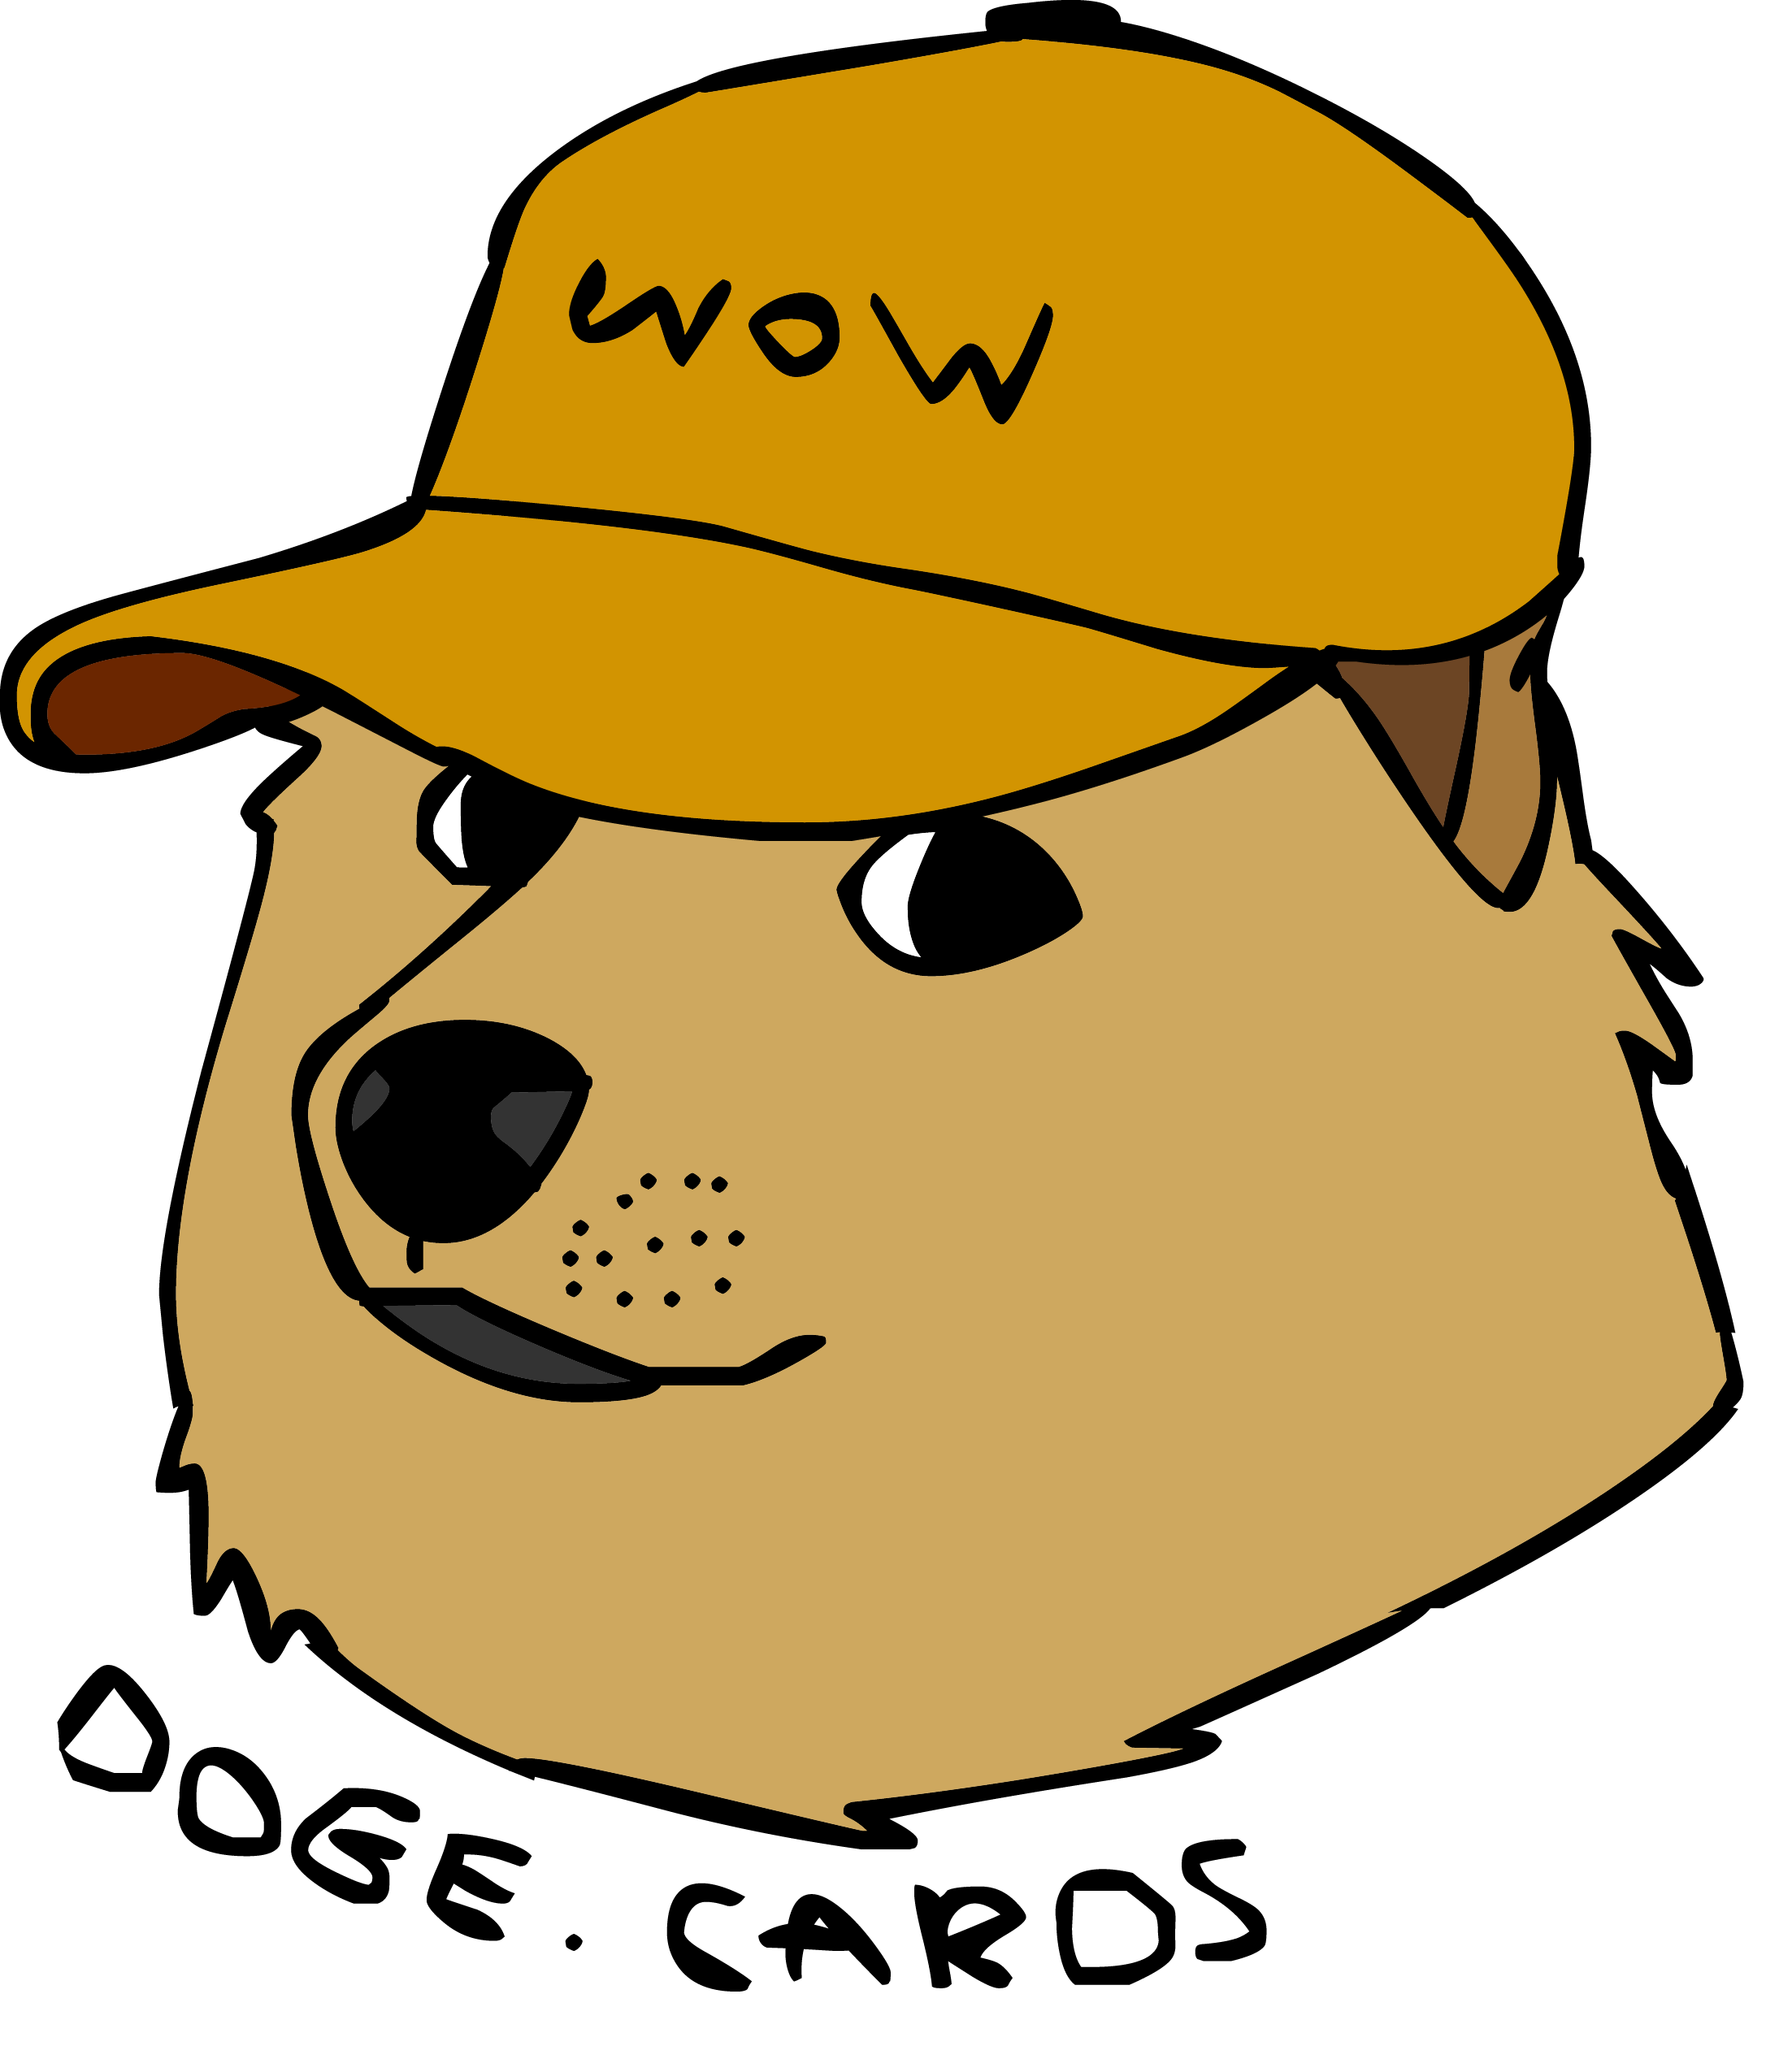 png royalty free download I drew a quick. Doge vector